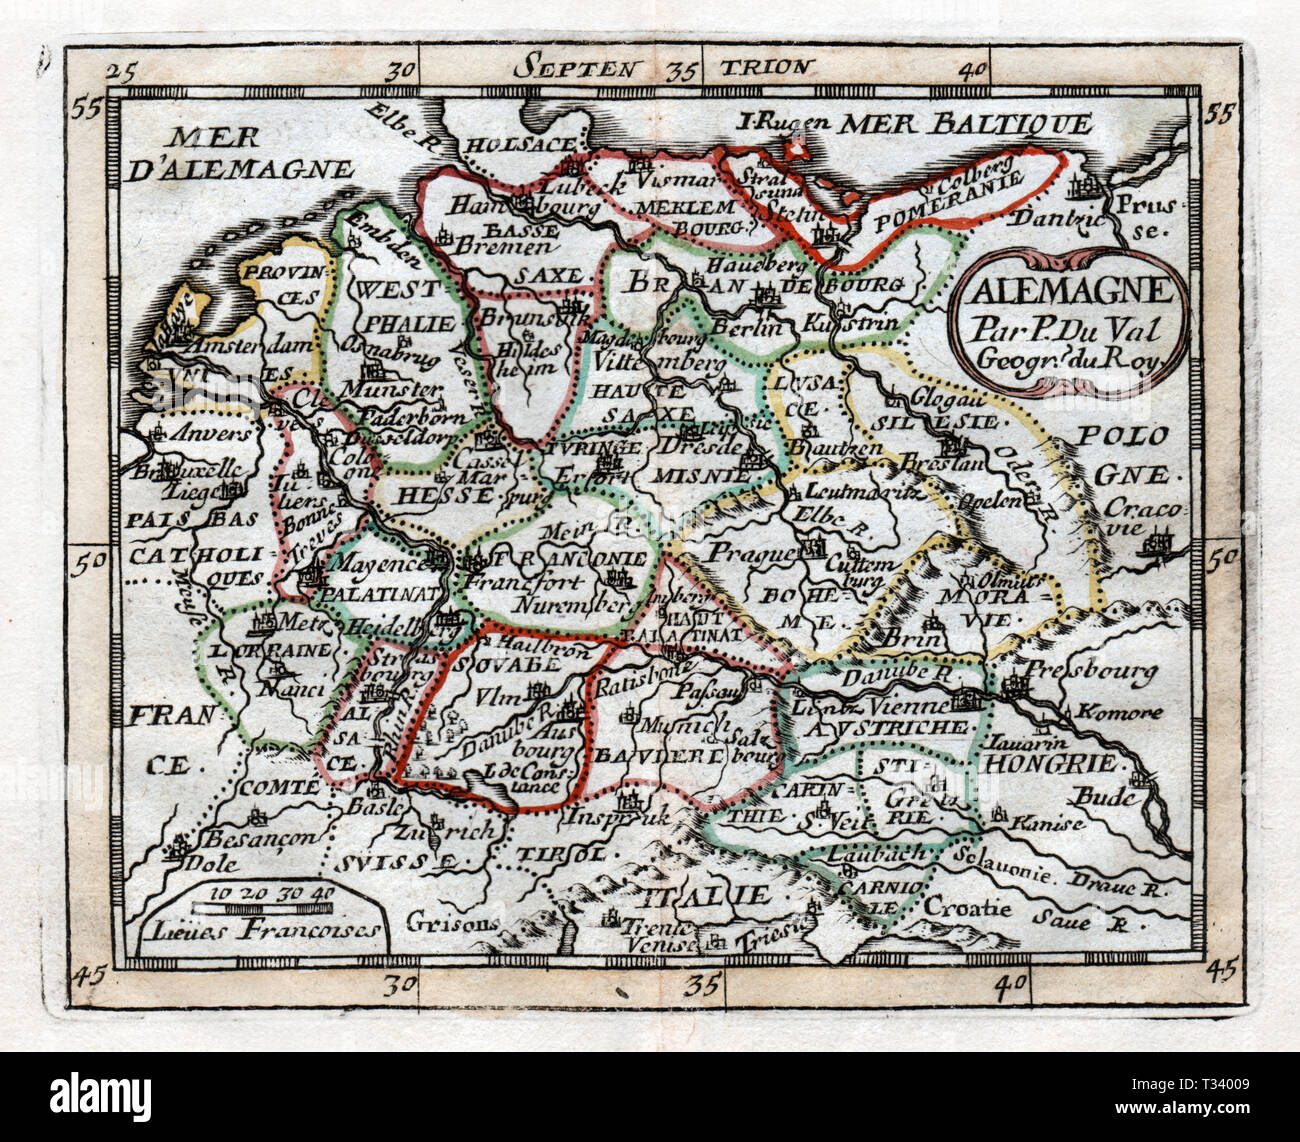 Map Of Holland And Germany.Antique Map Of Germany Holland Austria And Hungary In Europe By